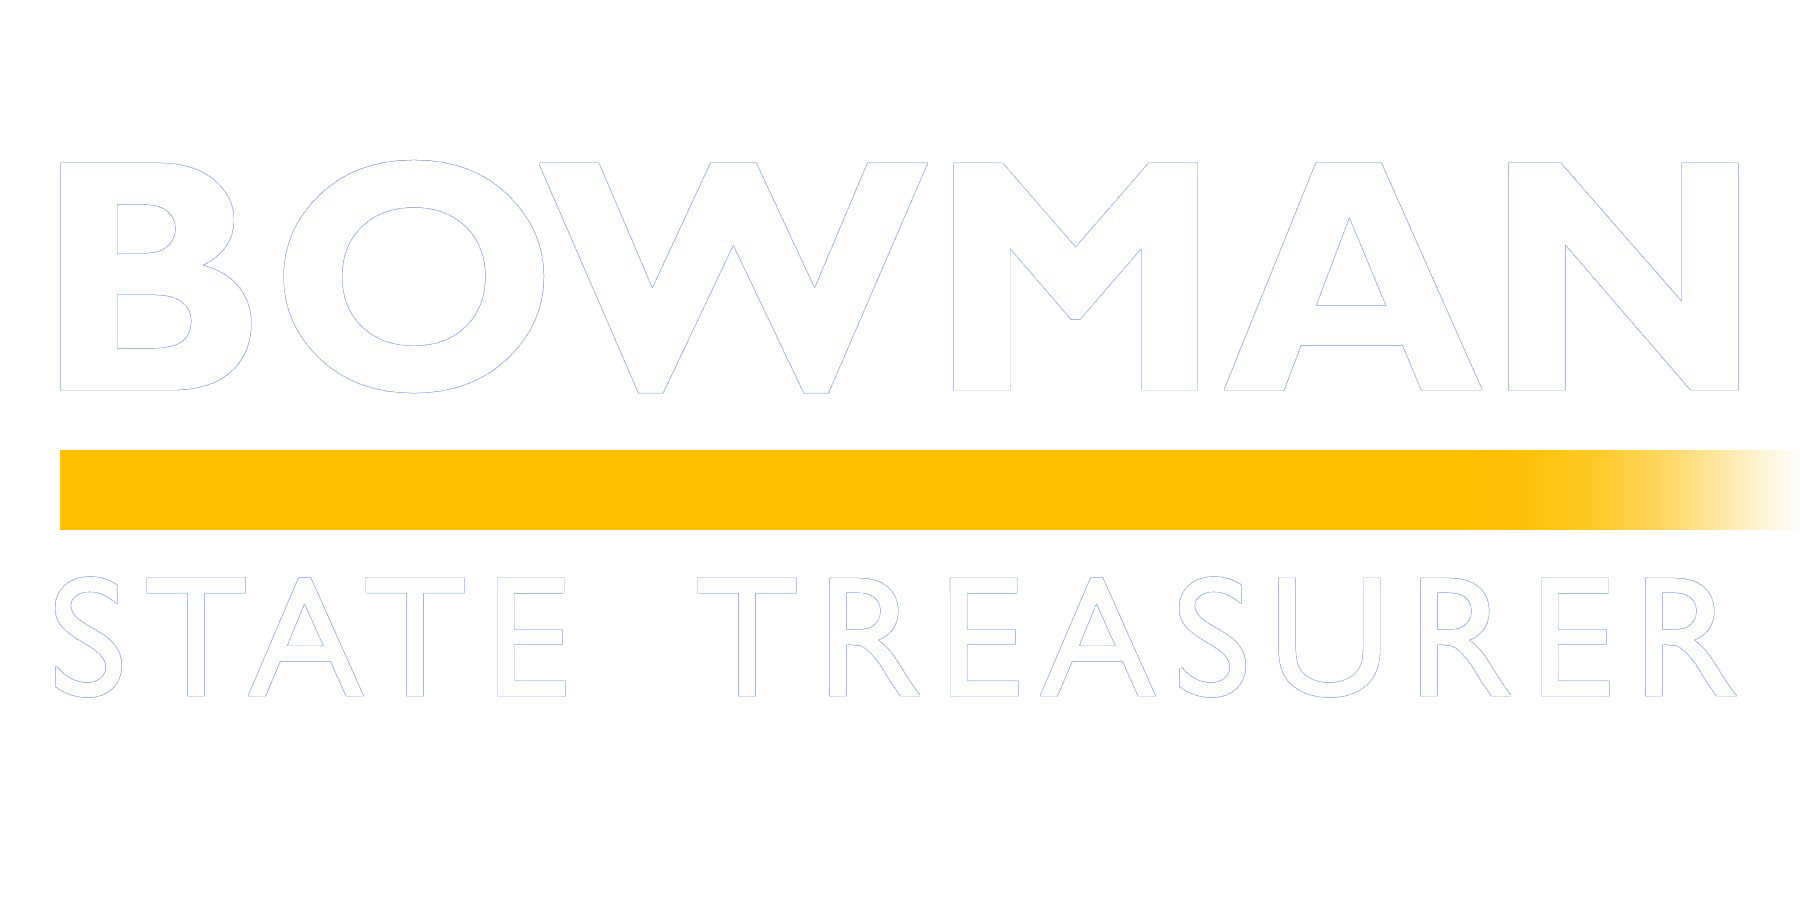 MICHAEL BOWMAN FOR state treasurer